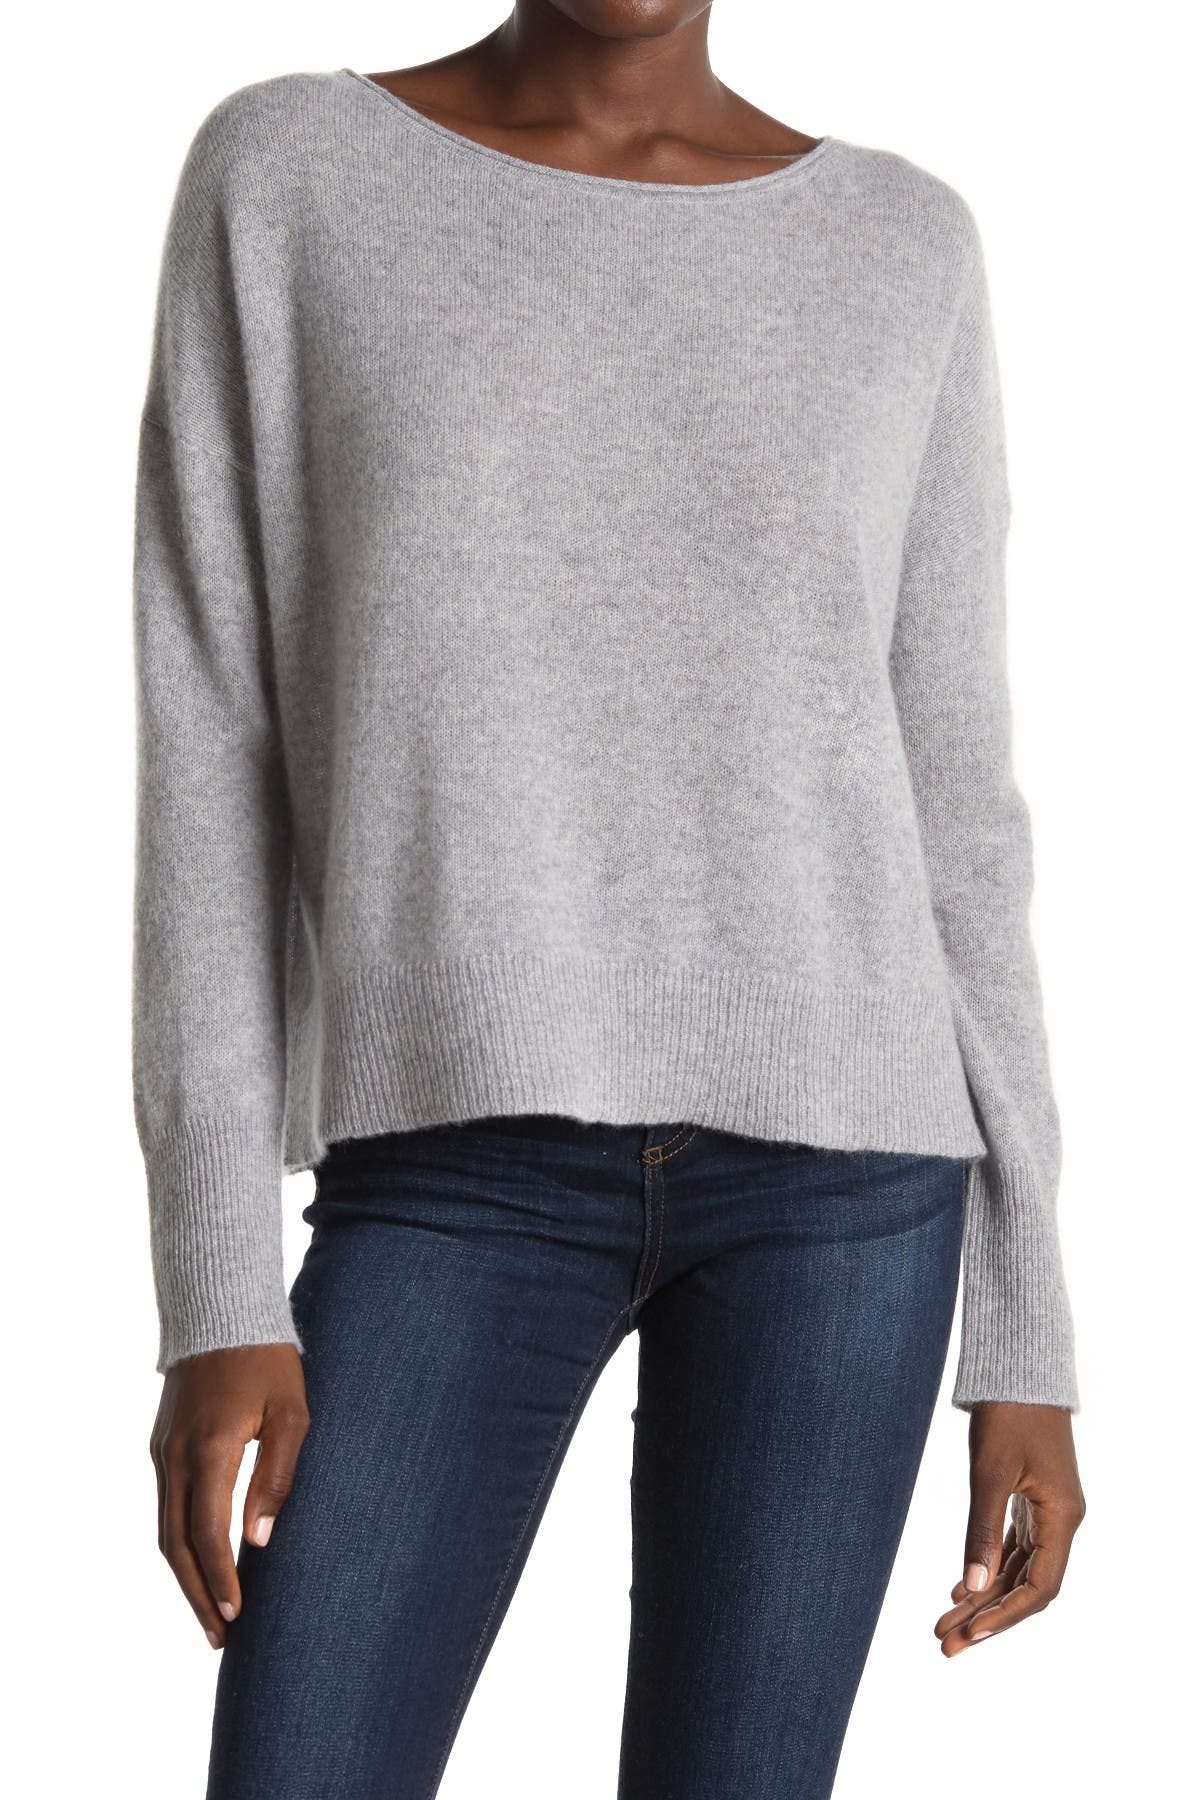 Image of 360 Cashmere Greyson Anchor Graphic Cashmere Sweater